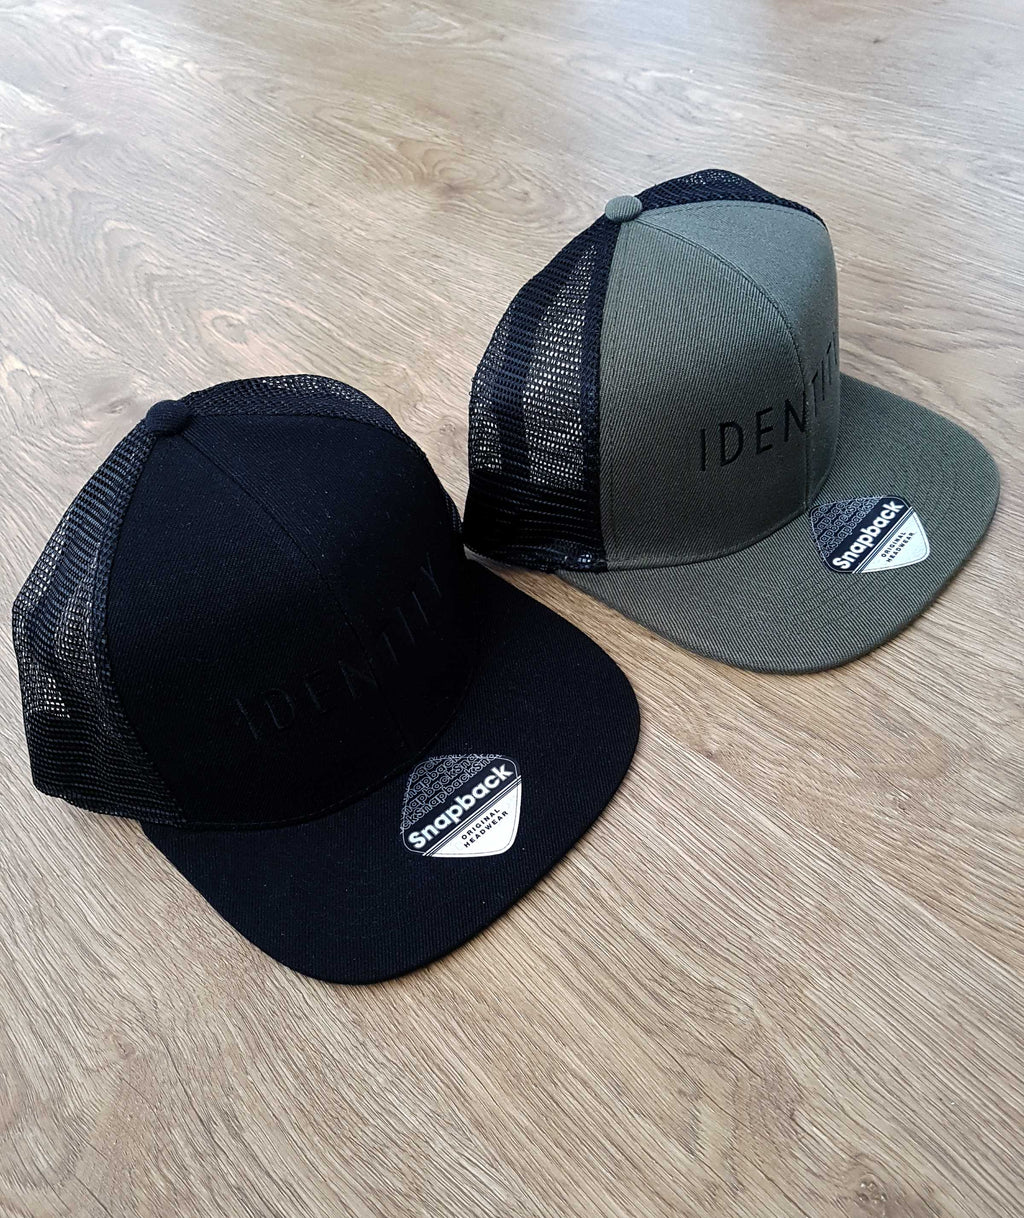 Mens Statement Flat Peak Trucker Cap (2 Colour Options)